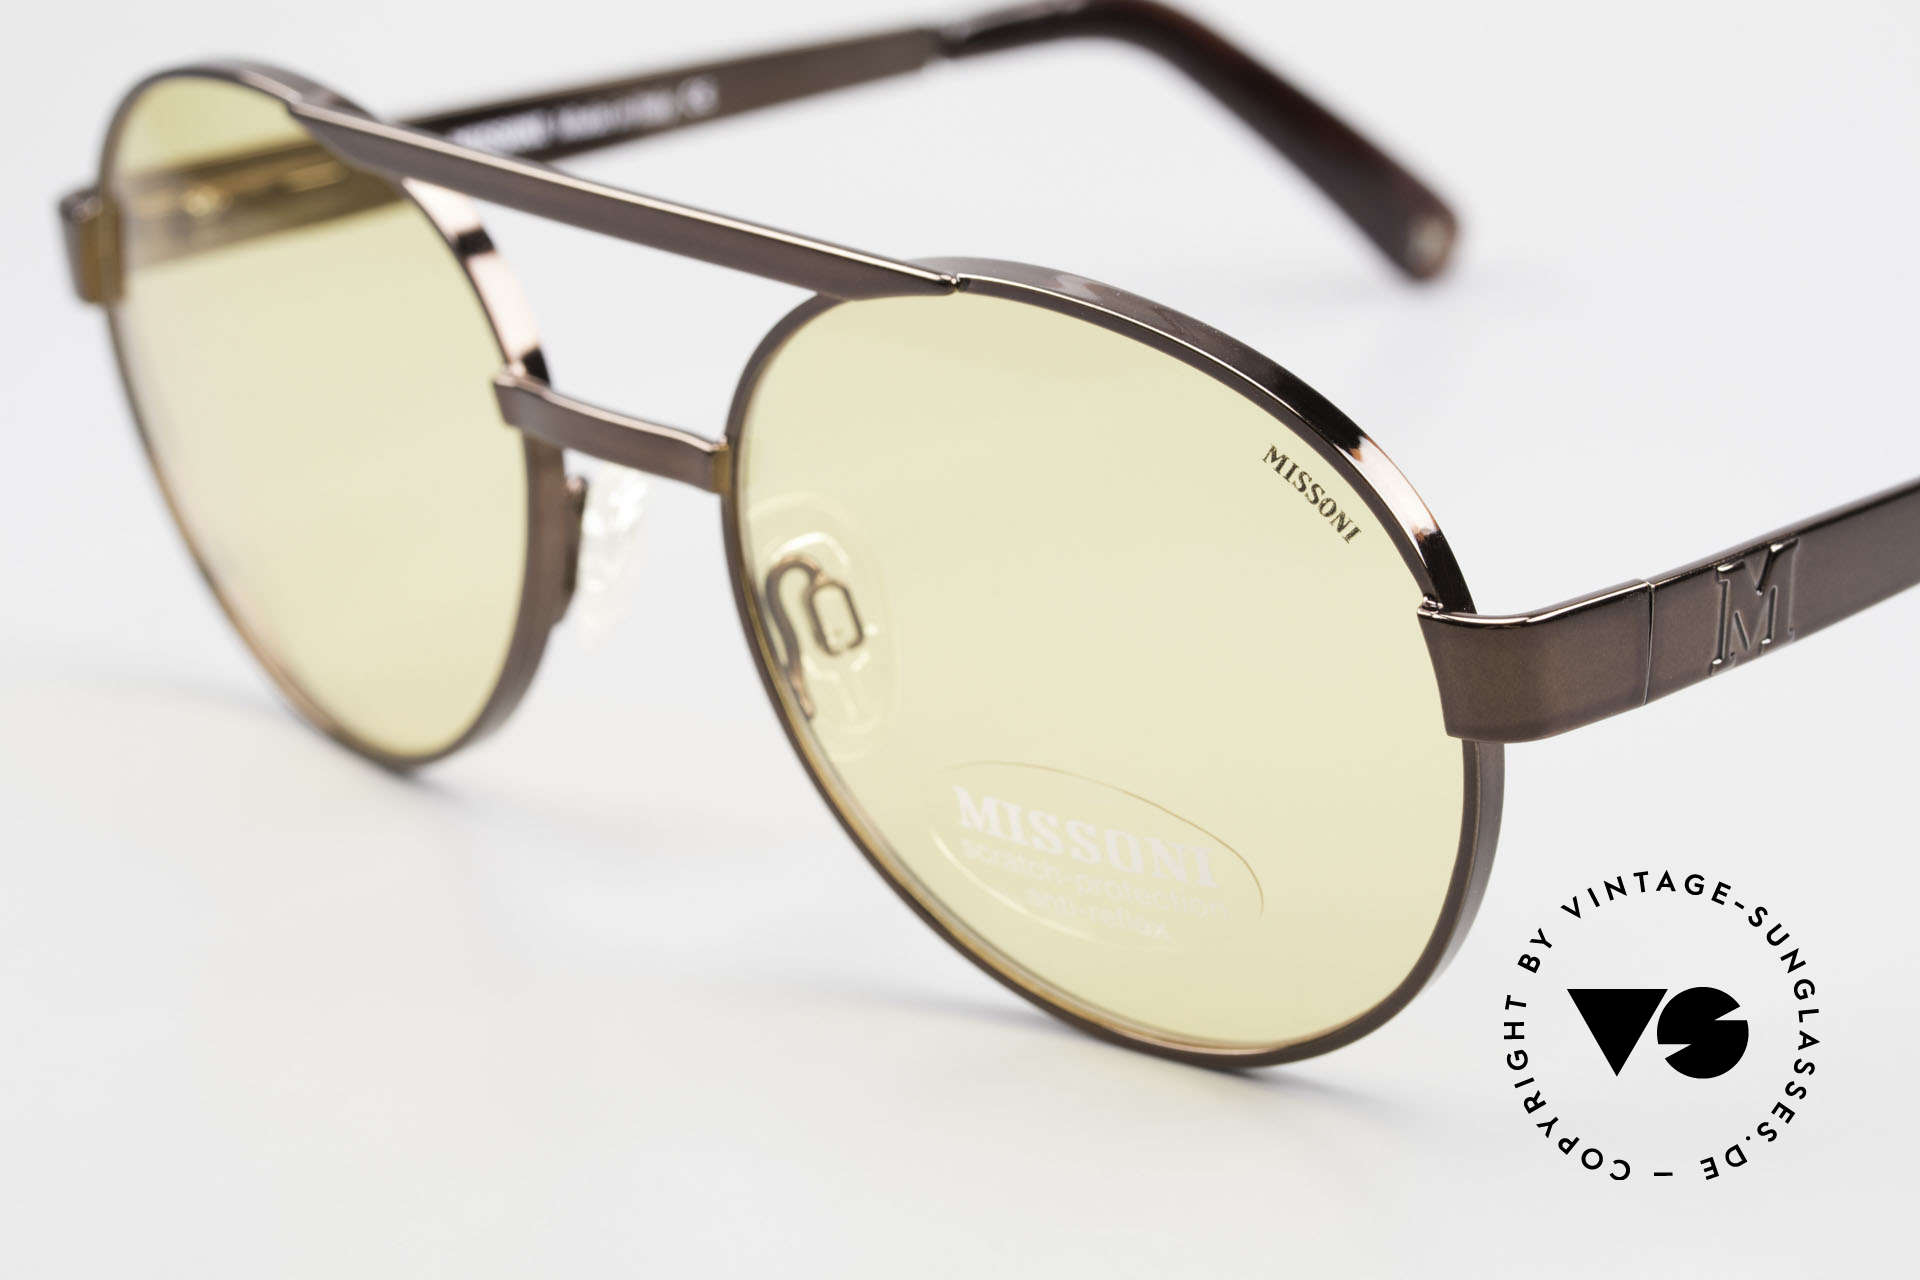 Missoni 0099 Round Panto 90's Sunglasses, with yellow lenses: scratch-protection, anti-reflex, Made for Men